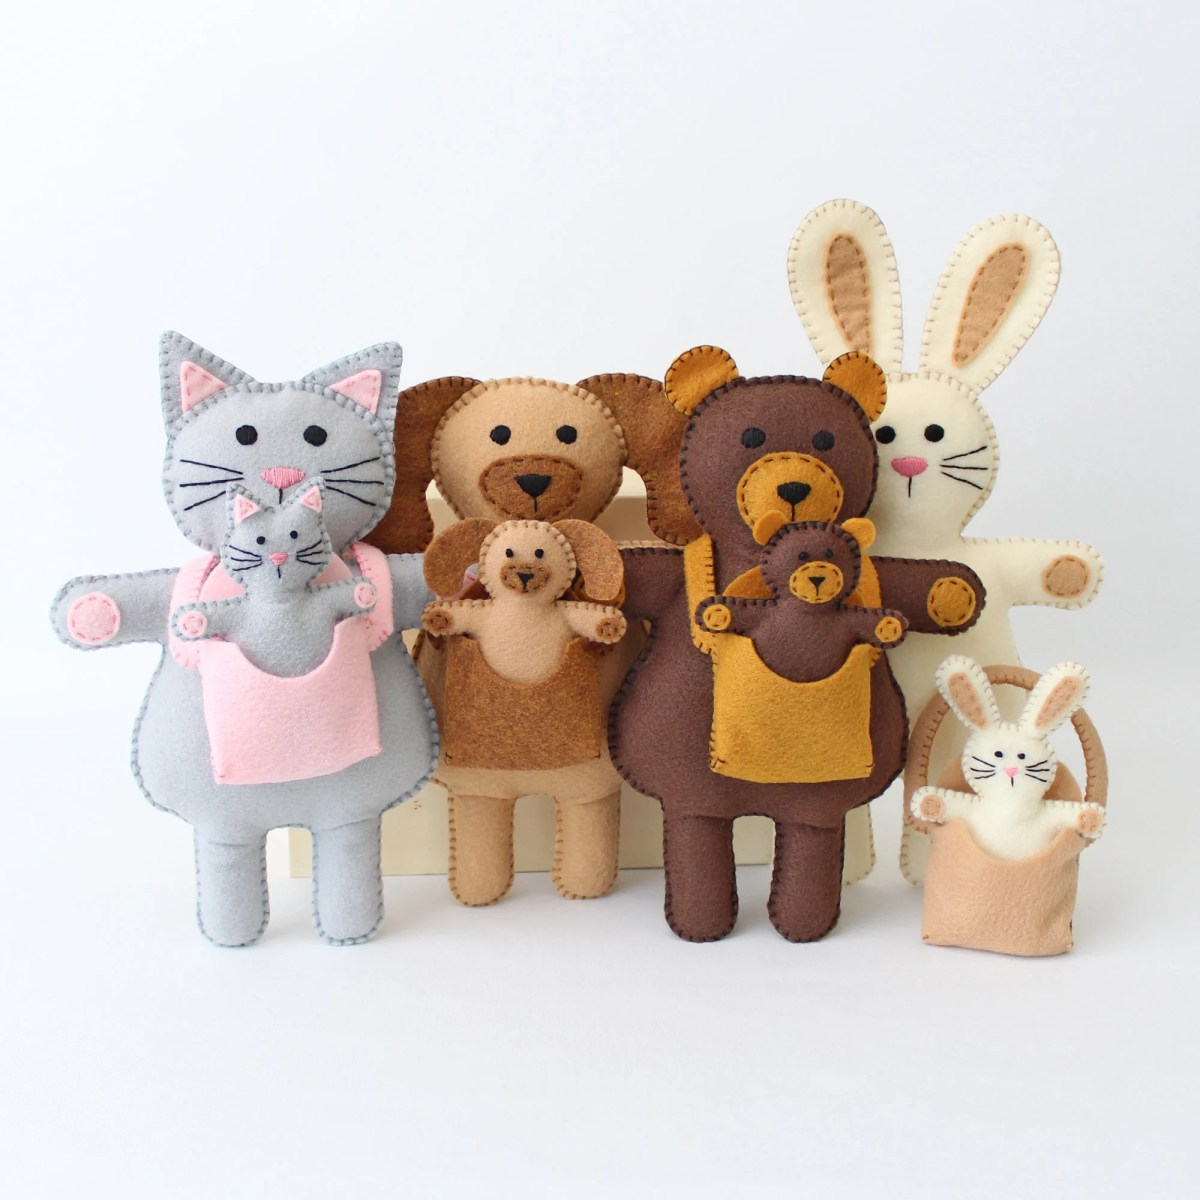 Mums and Babies Stuffed Animal Sewing Patterns, Felt Hand Sewing Teddy Bear Bunny Cat Dog and Infant Carriers, Mother and Baby